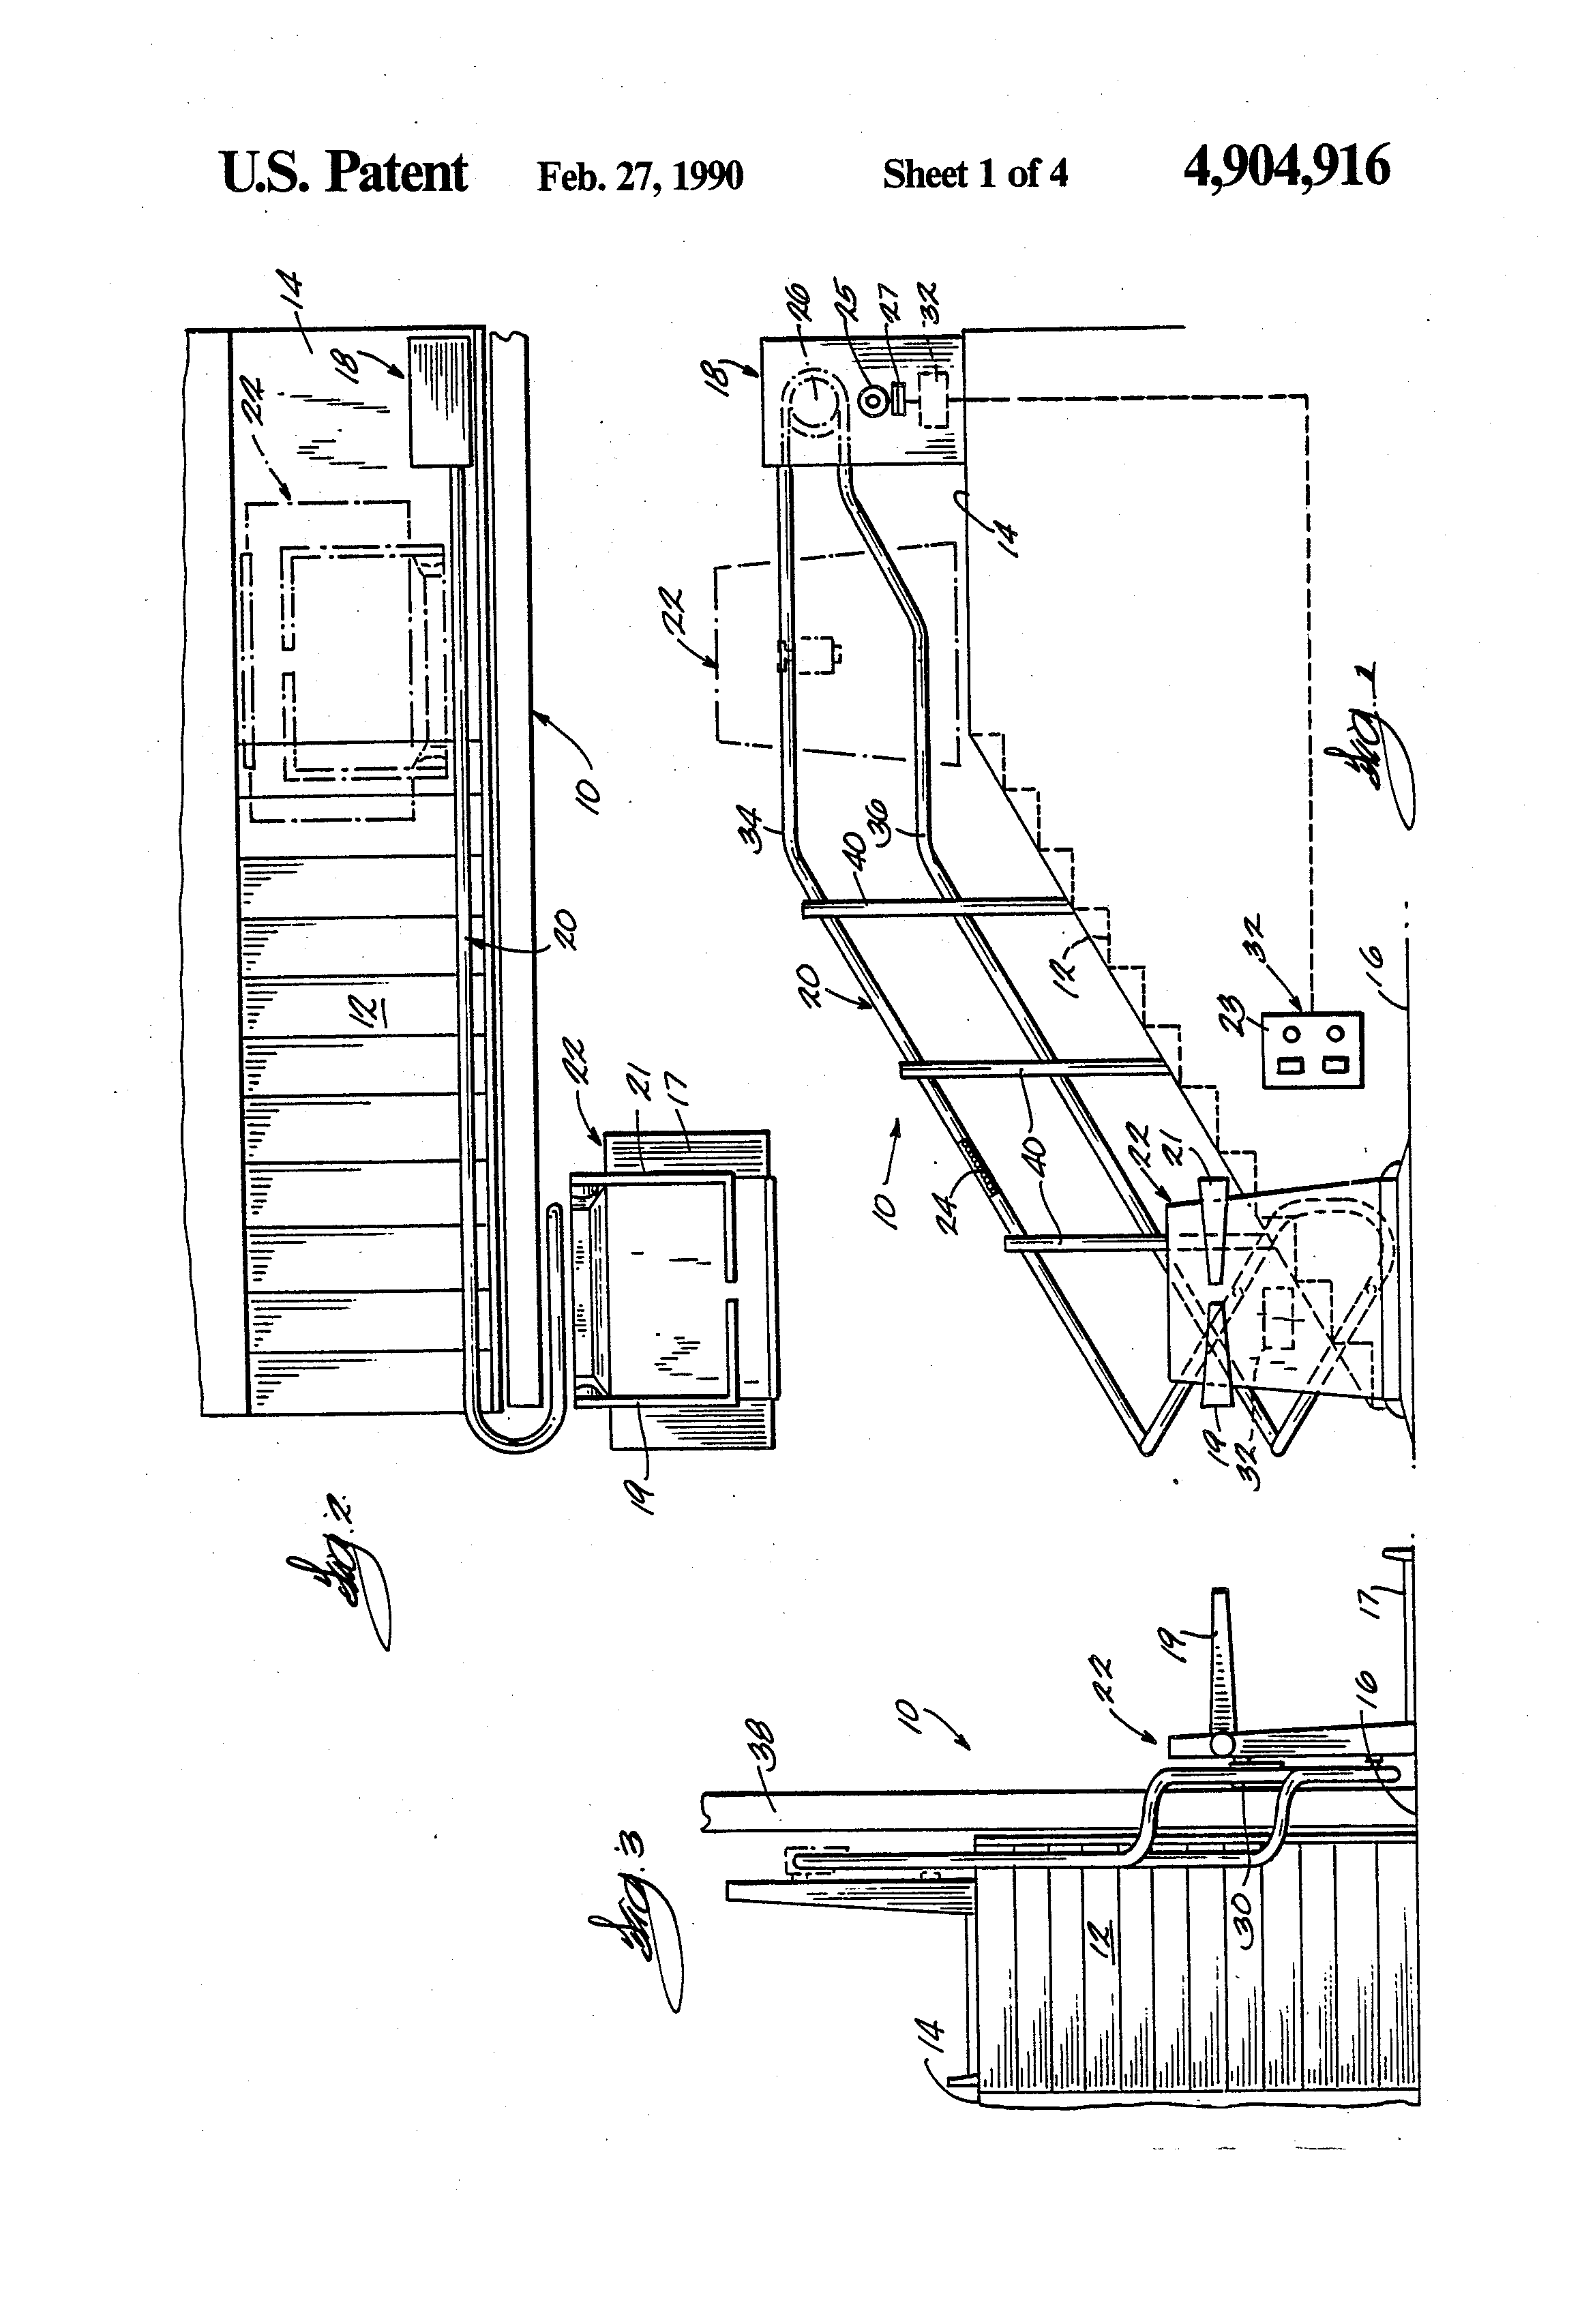 Wiring Diagram For Mobility Svm Lift System